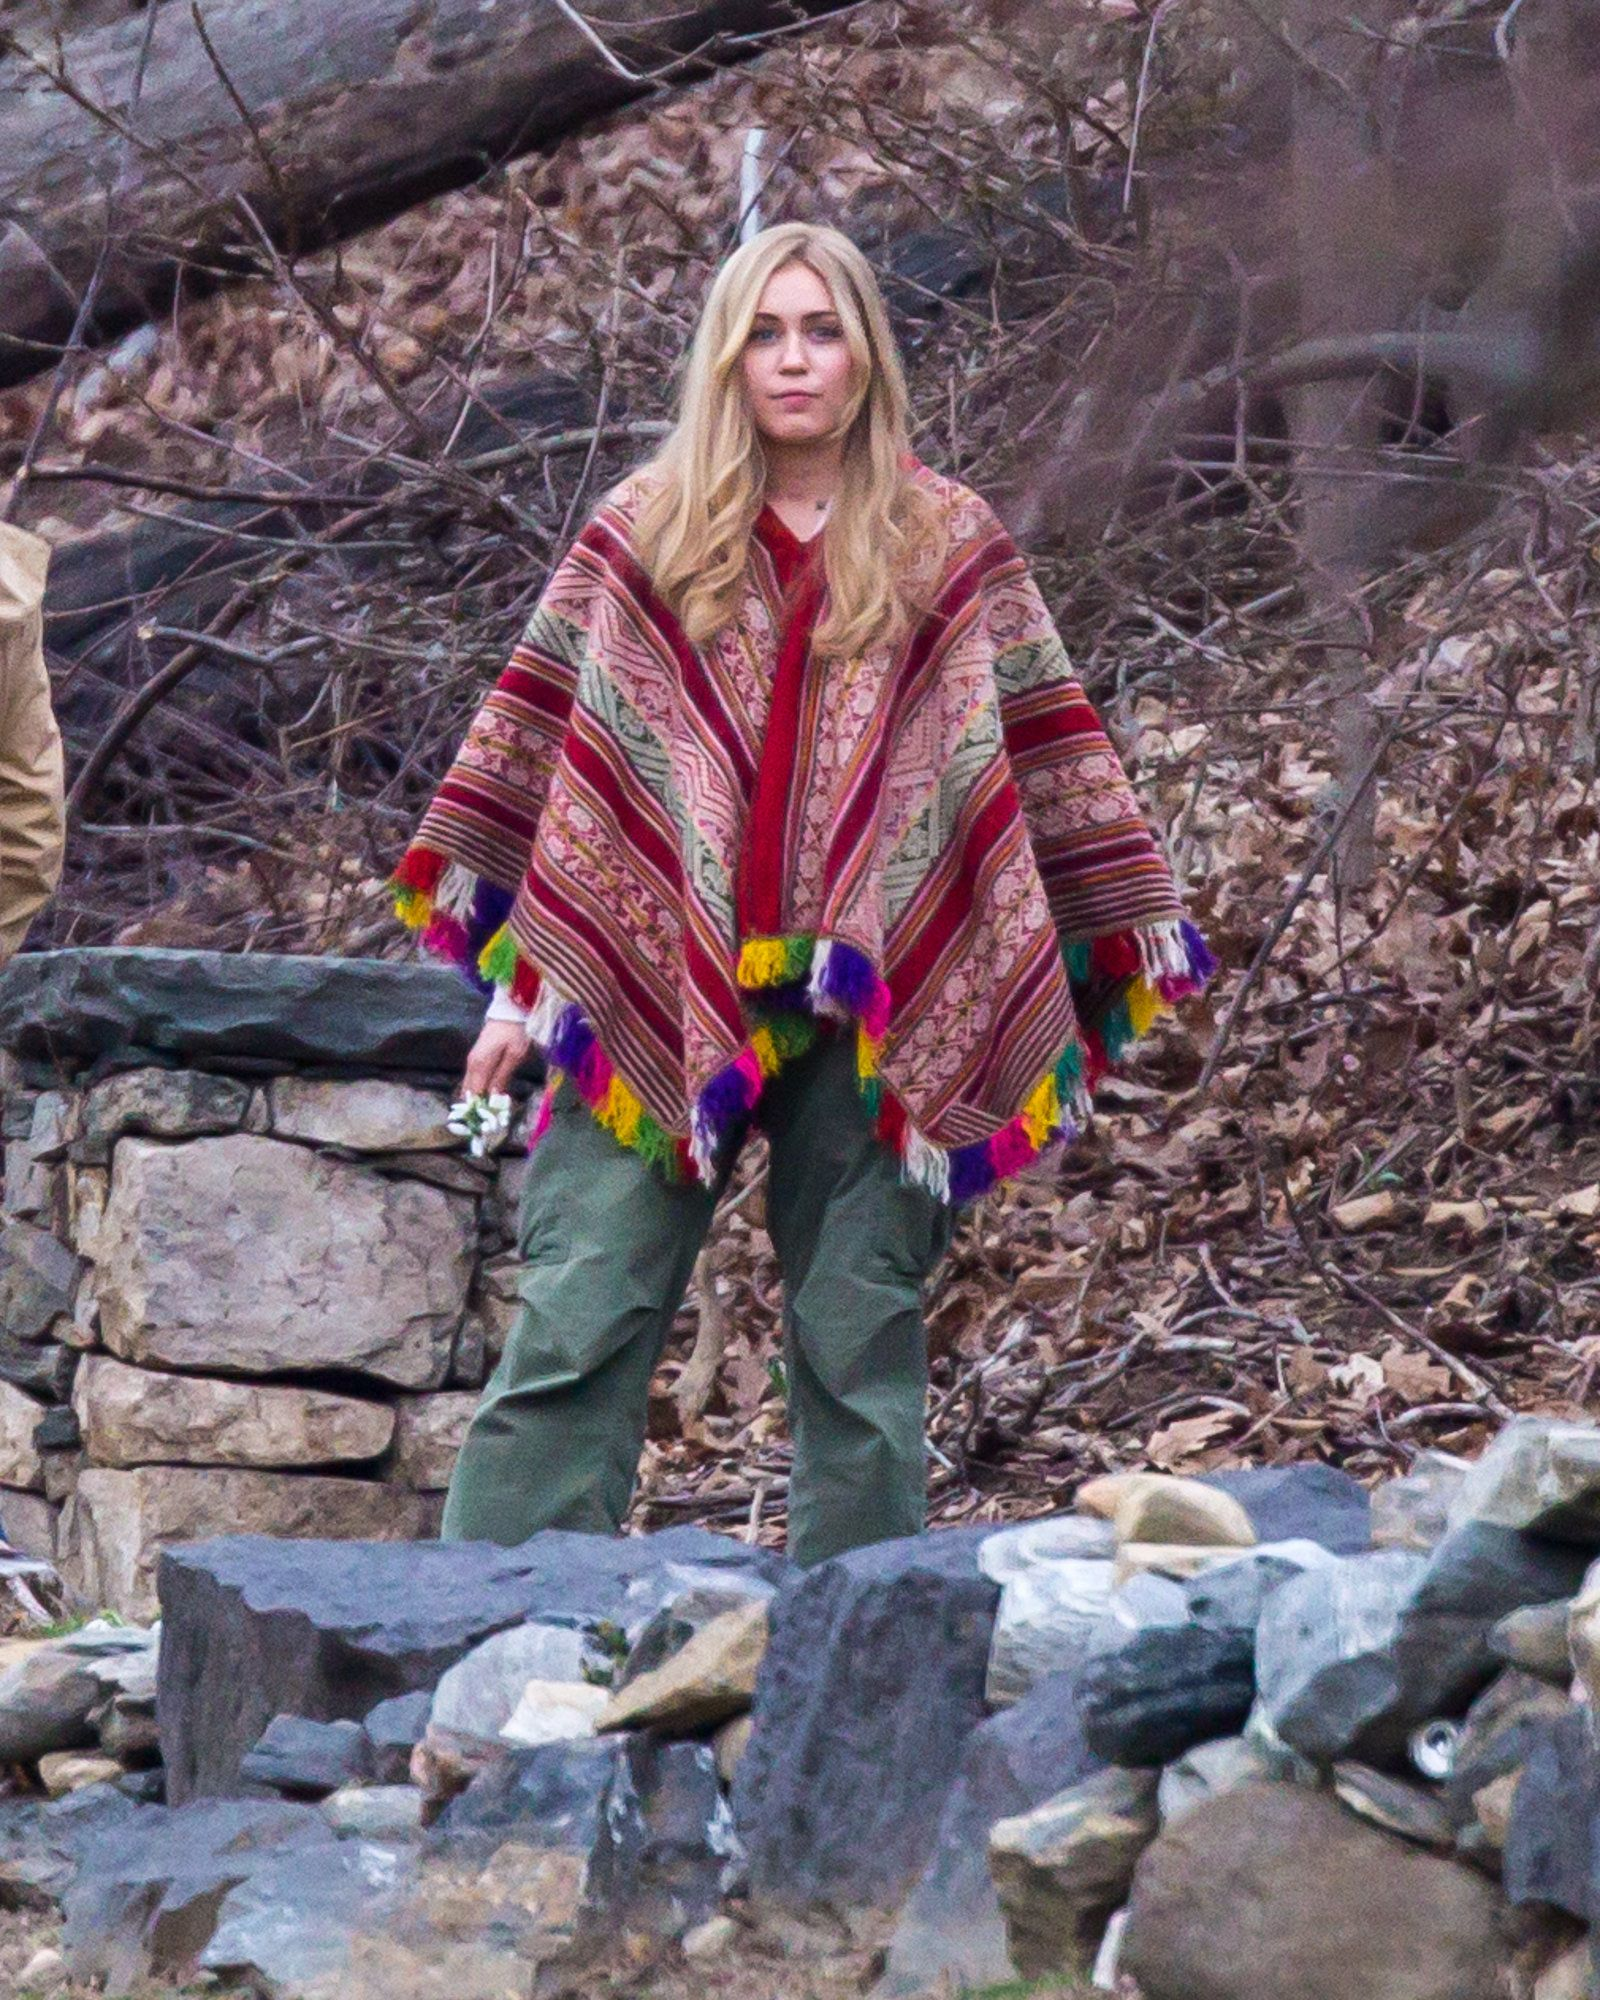 Miley Cyrus in long wig and hippie outfit seen filming Woody Allen's Amazon Project In Upstate New York.<P>Pictured: Miley Cyrus<B>Ref: SPL1243128  110316  </B><BR/>Picture by: Allan Bregg / Splash News<BR/></P><P><B>Splash News and Pictures</B><BR/>Los Angeles:310-821-2666<BR/>New York:212-619-2666<BR/>London:870-934-2666<BR/>photodesk@splashnews.com<BR/></P>